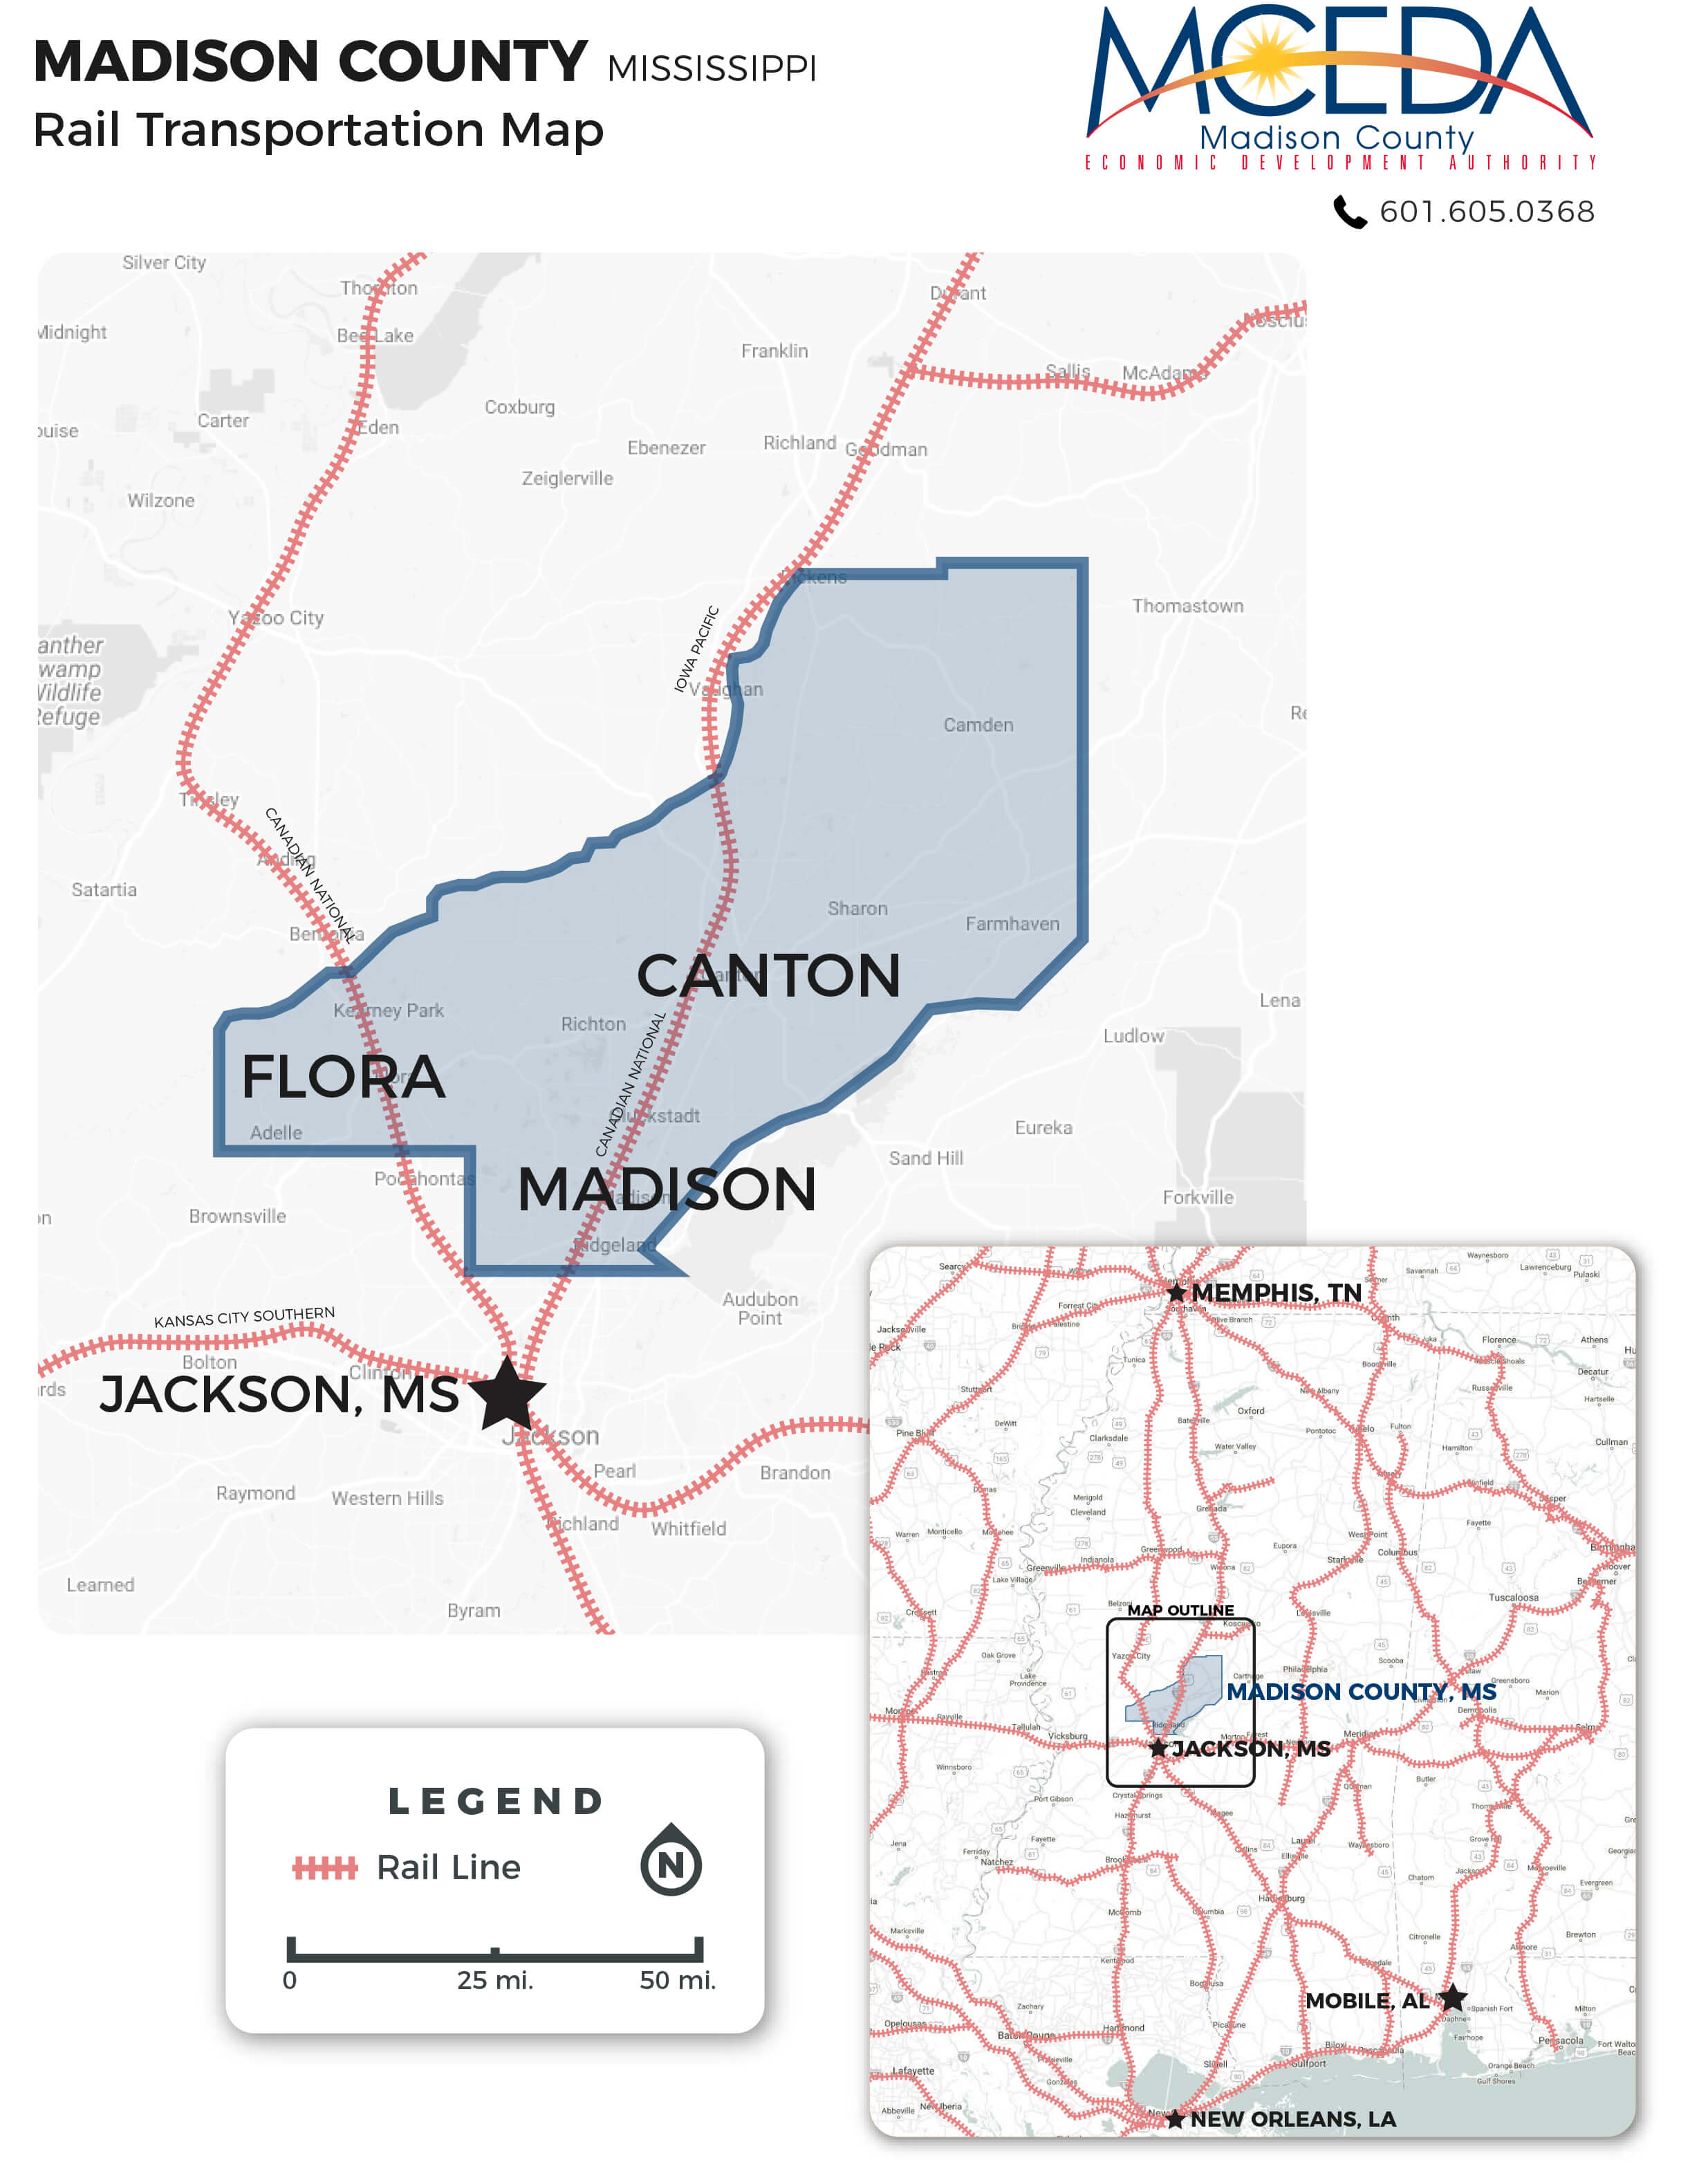 Image of Madison County, MS Rail Transportation Map